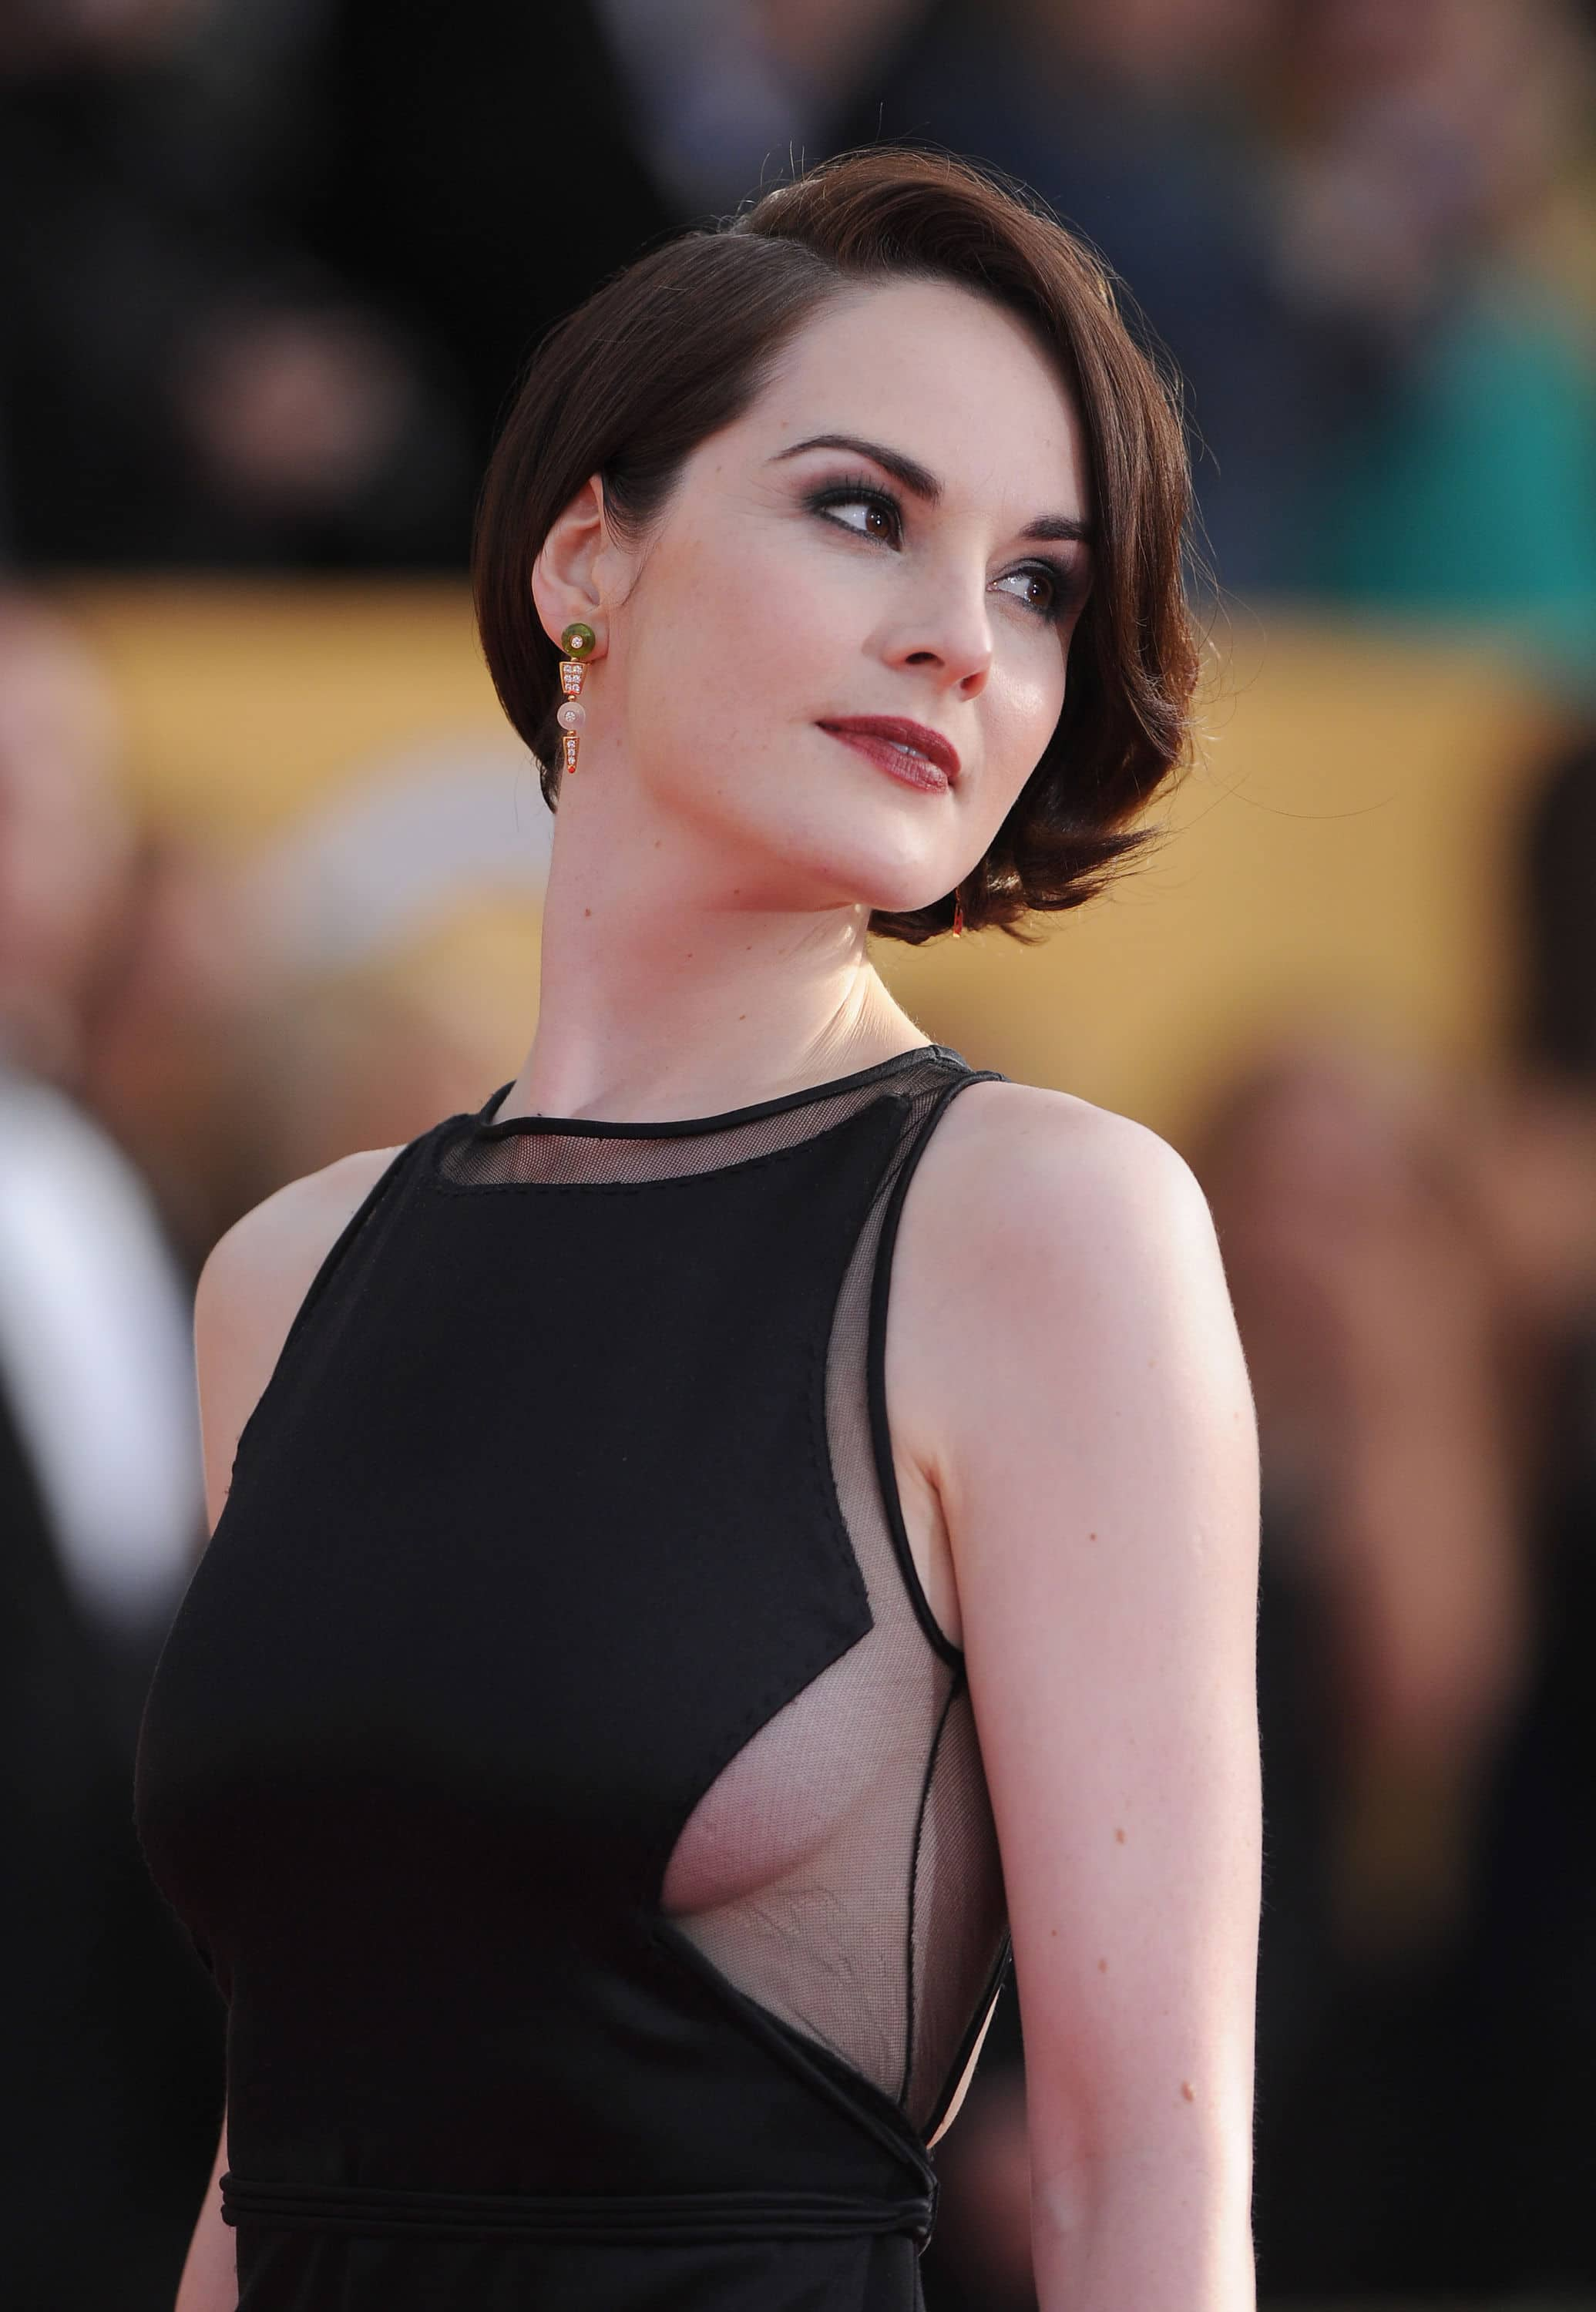 Michelle Dockery British Actress, Singer